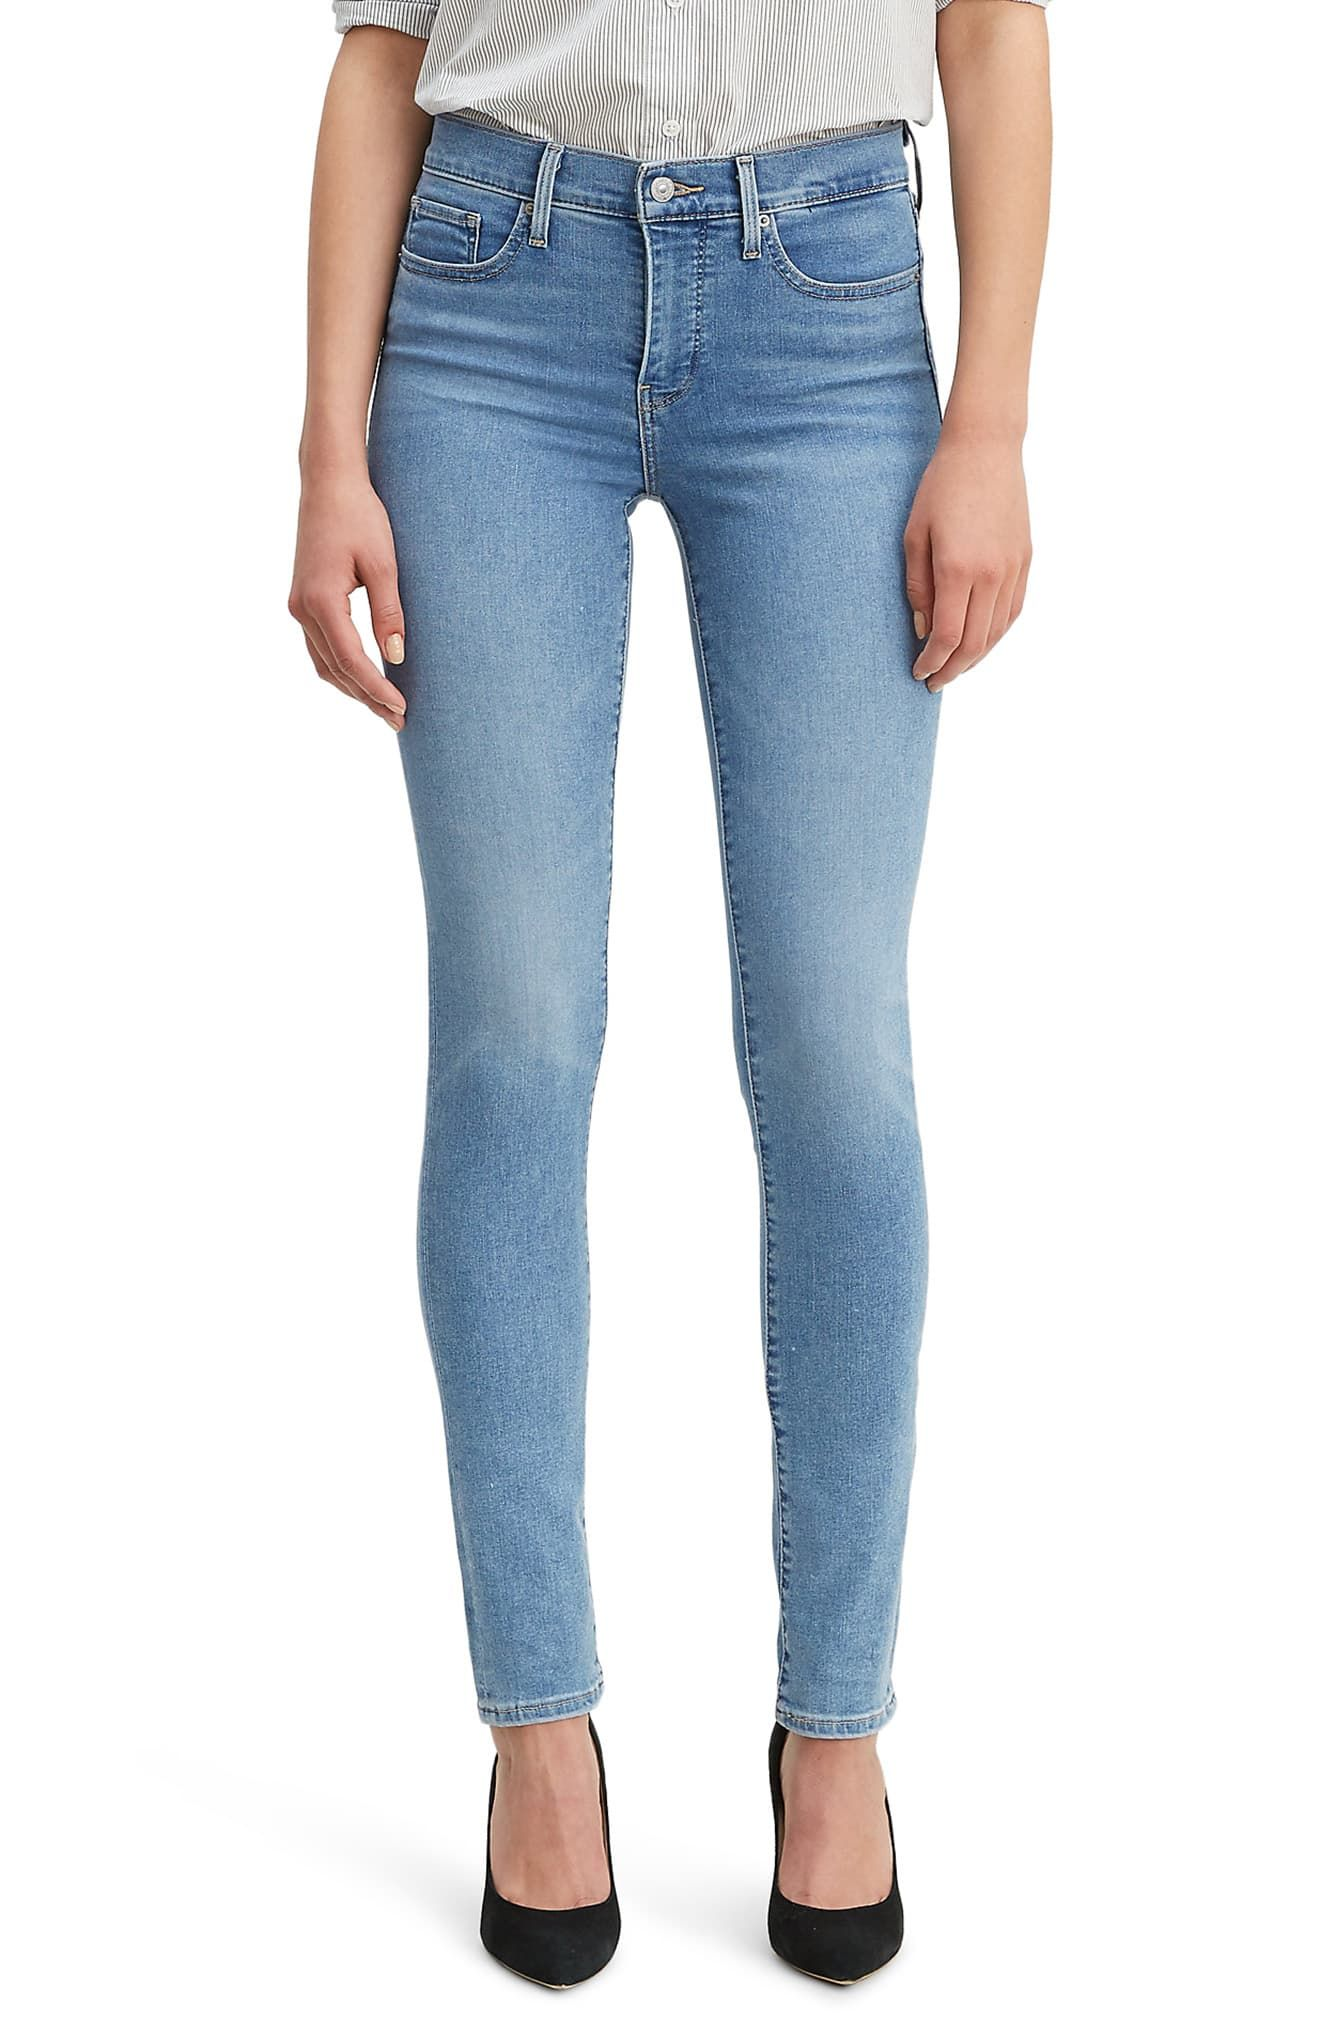 Women's Levi's 311™ Shaping Skinny Jeans, Size 25 x 30